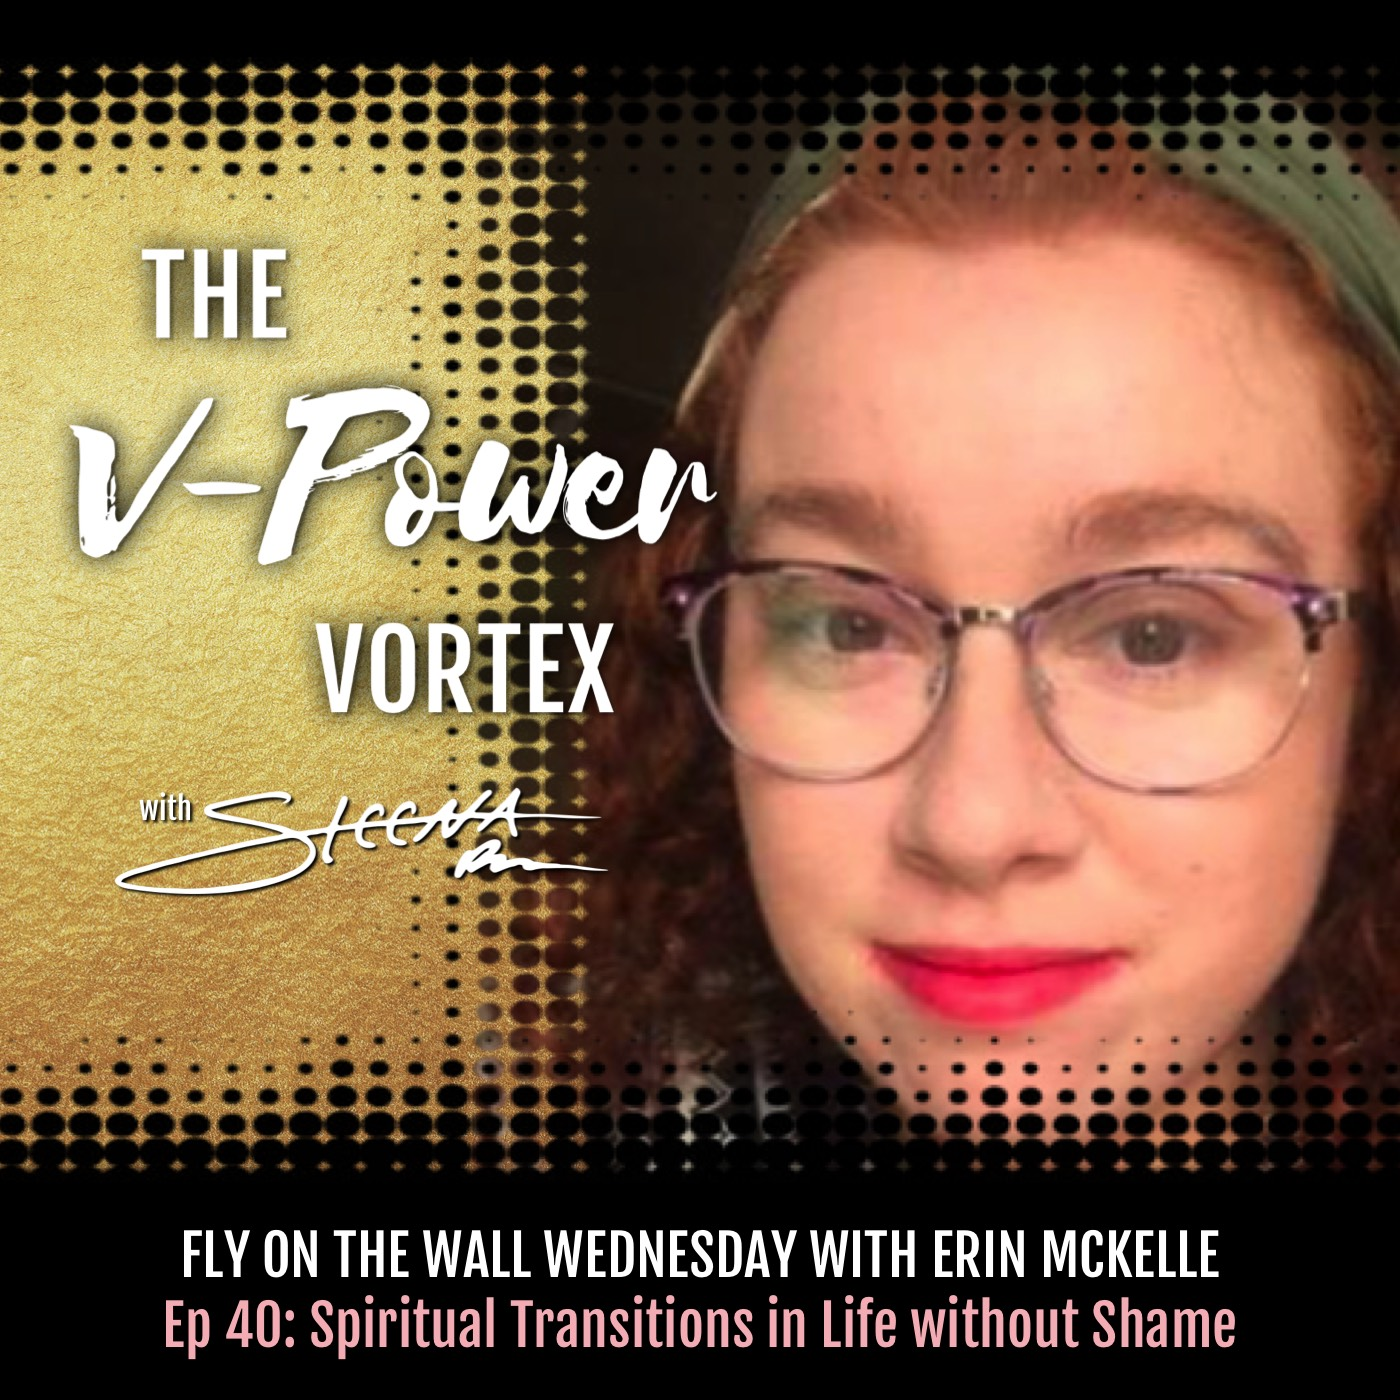 Ep 40 Spiritual Transitions in Life without Shame - Fly on the Wall Wednesday with Erin McKelle.jpeg